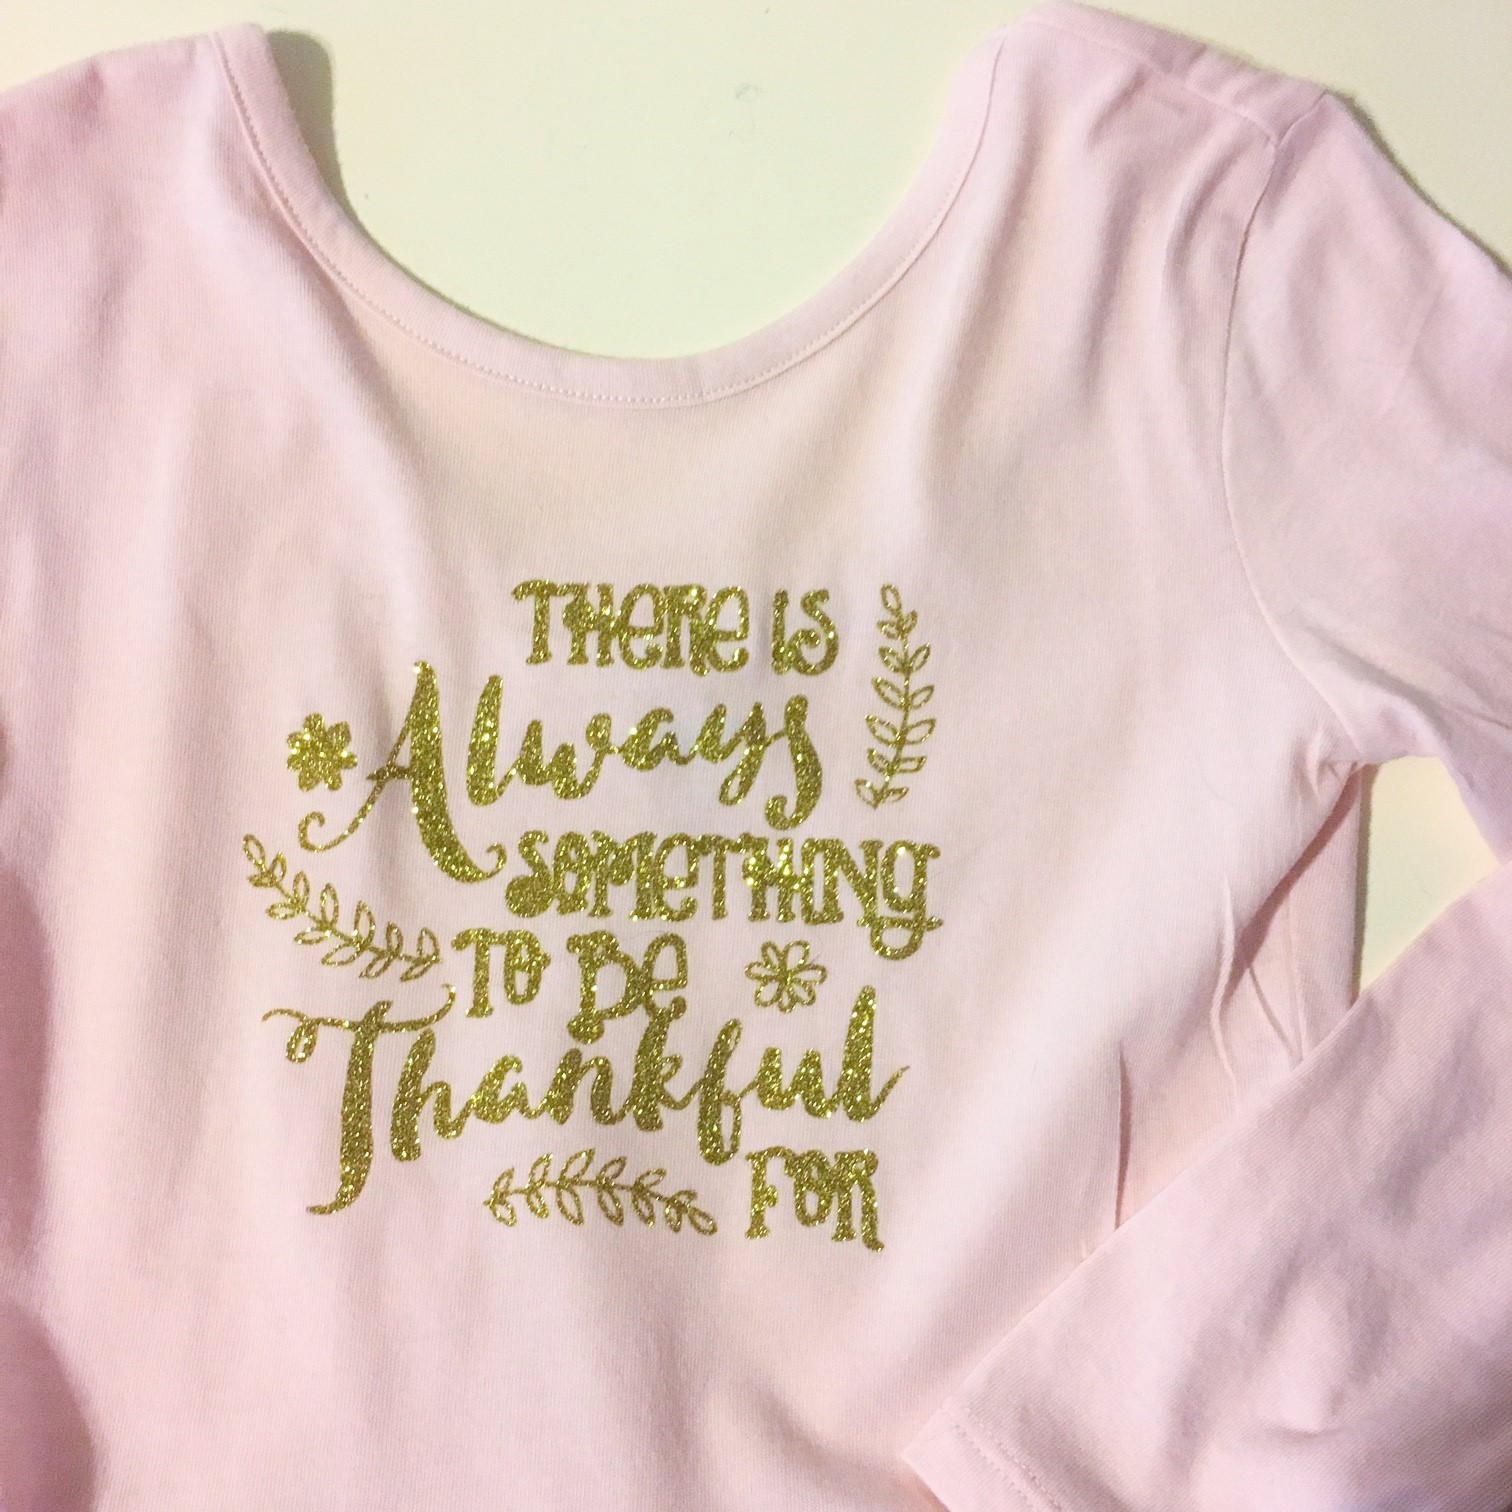 Thanksiving shirt that you can create with heat transfer vinyl